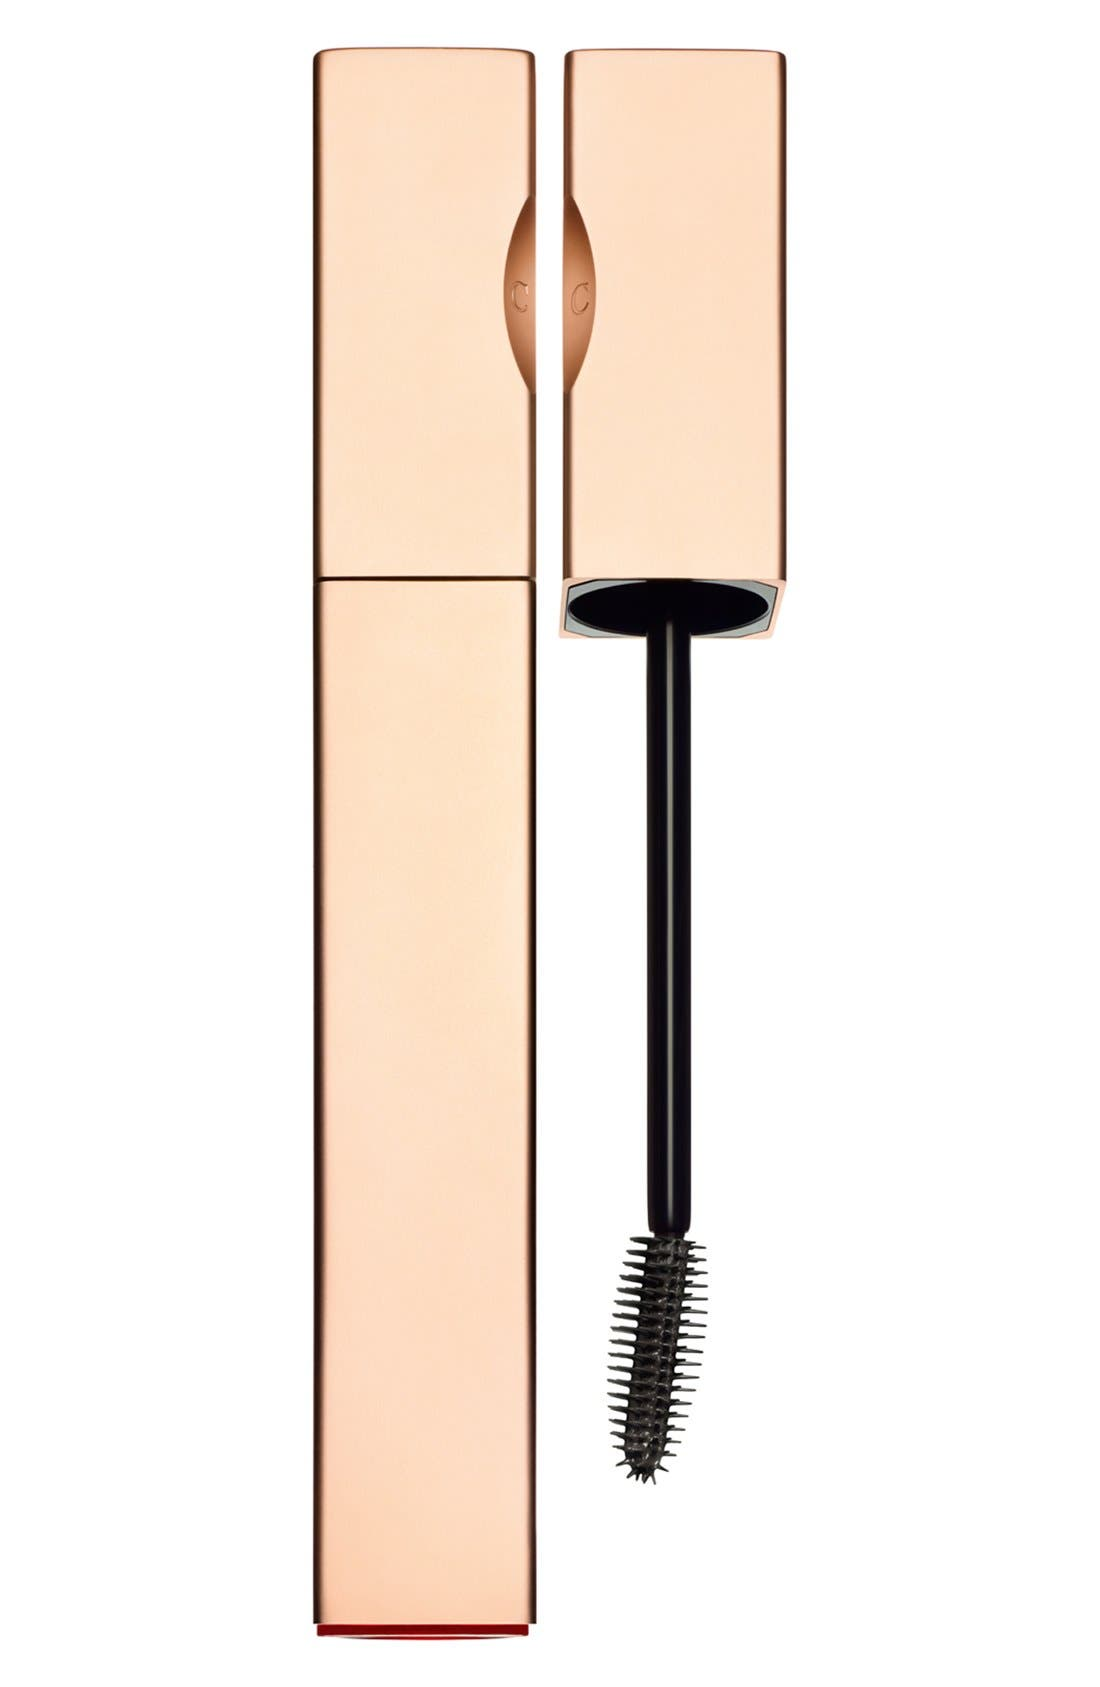 Clarins 'Be Long' Mascara